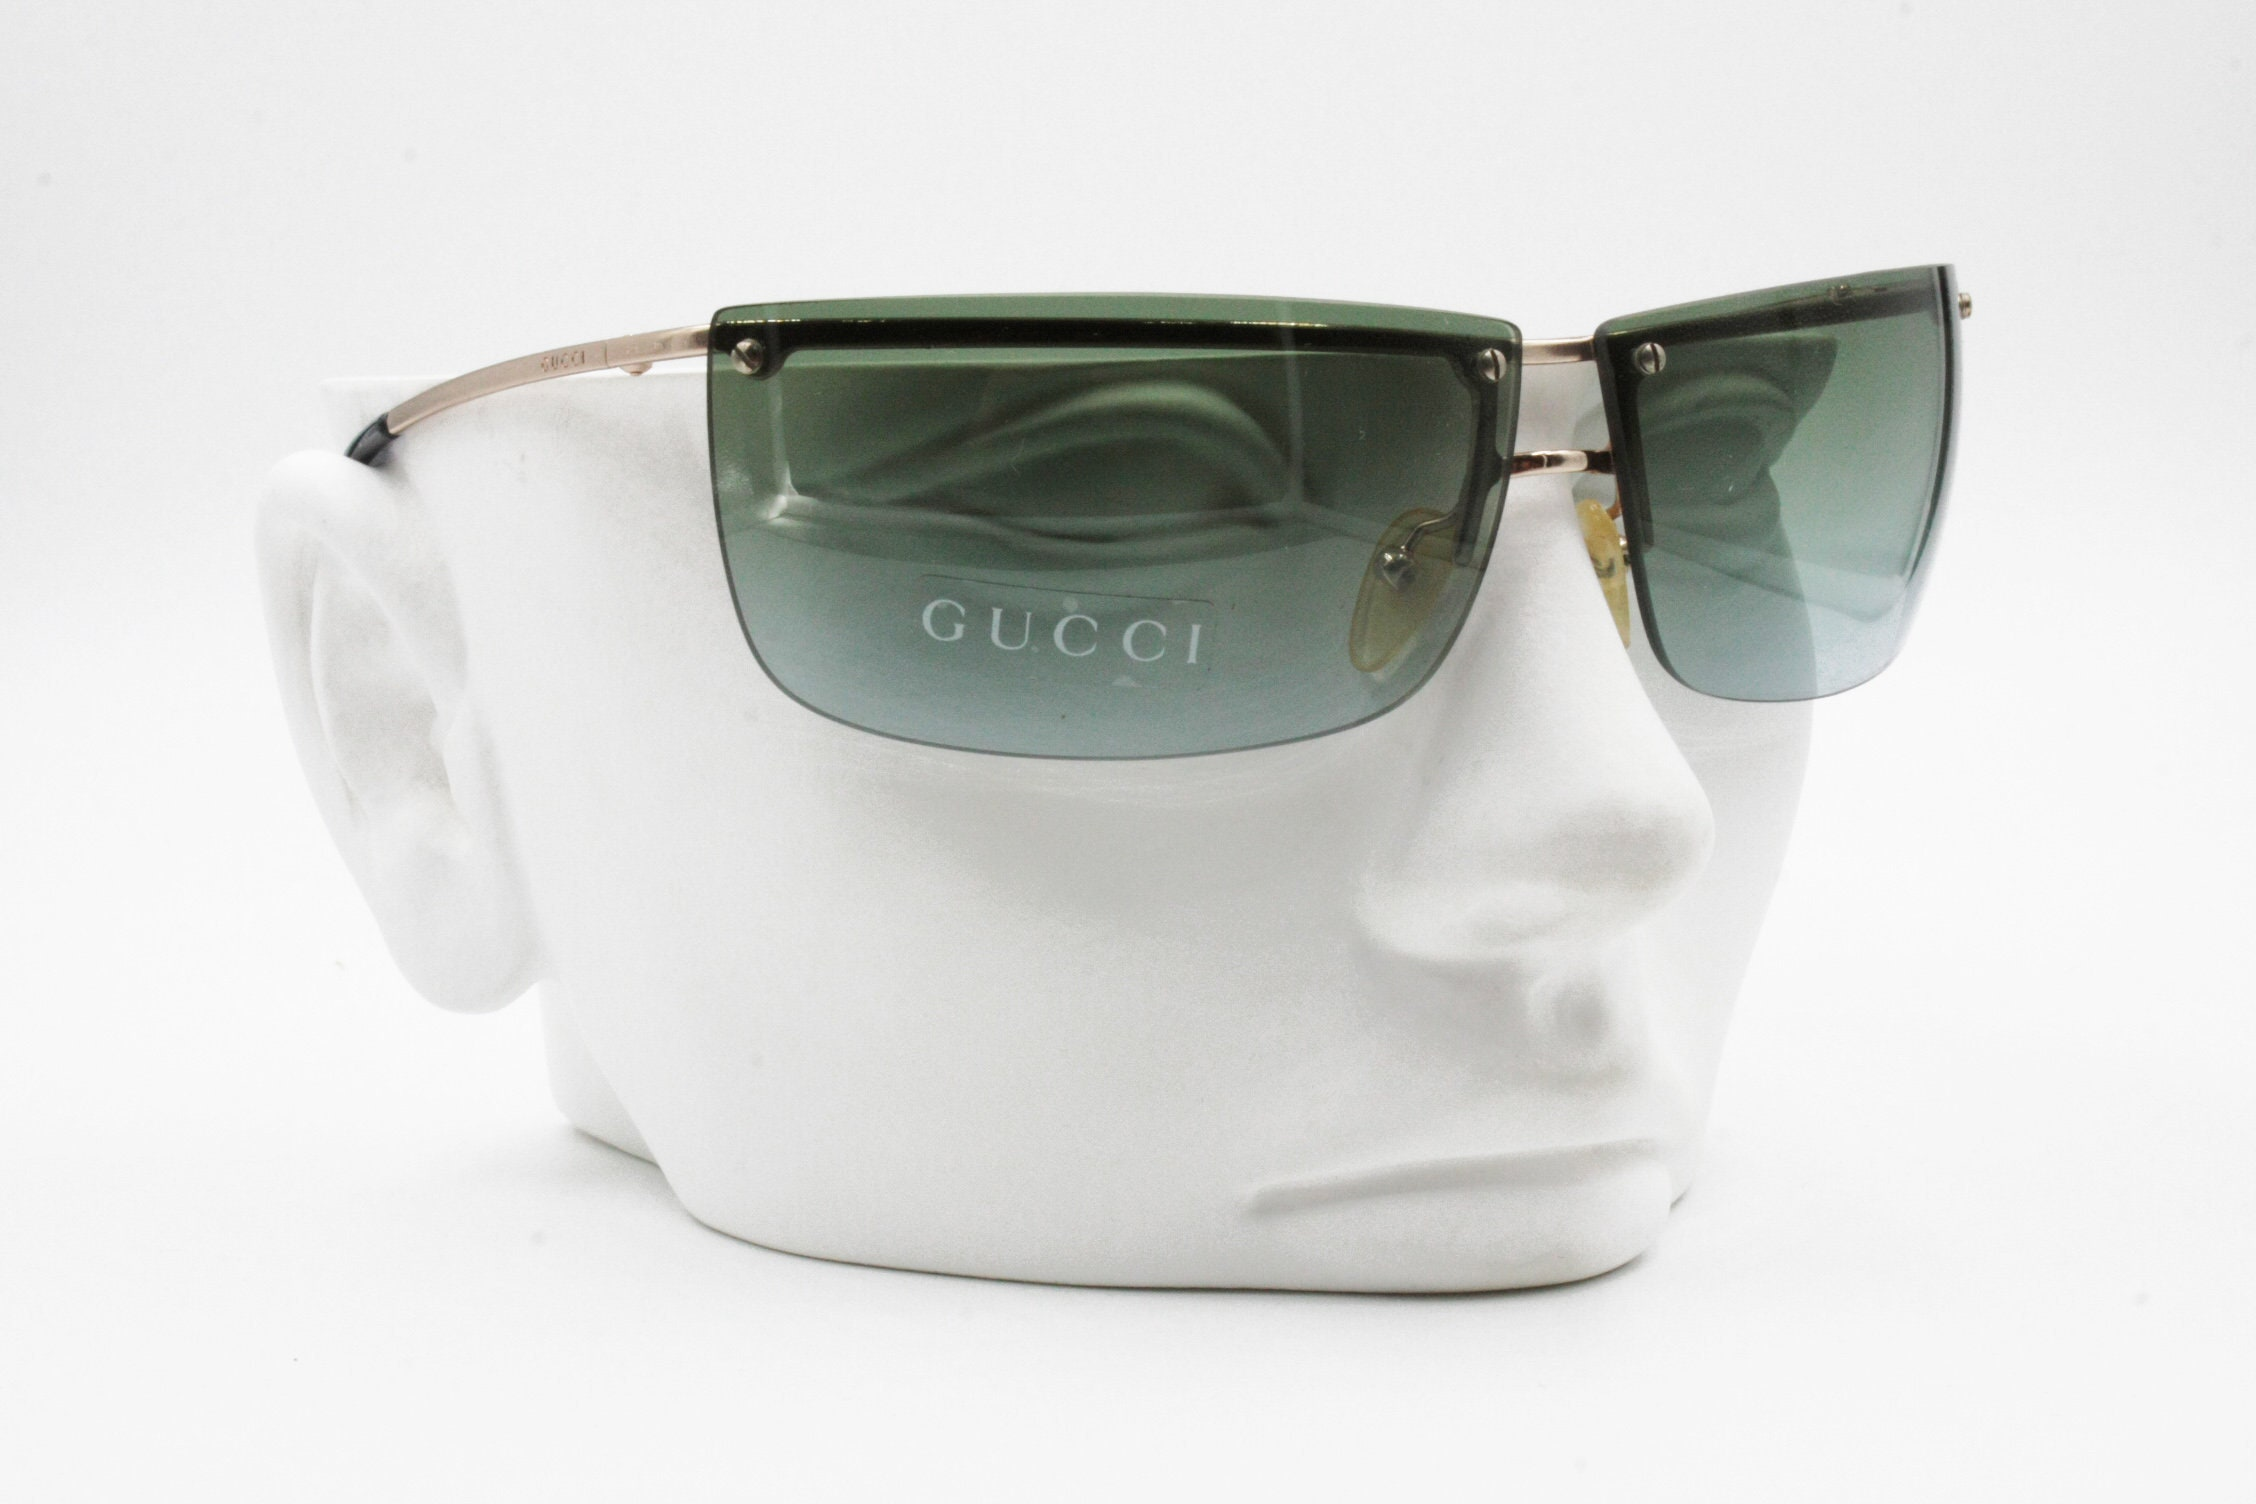 465d1ac2235 Gucci Vintage Sunglasses GG 2653 S 000BY men   womens green